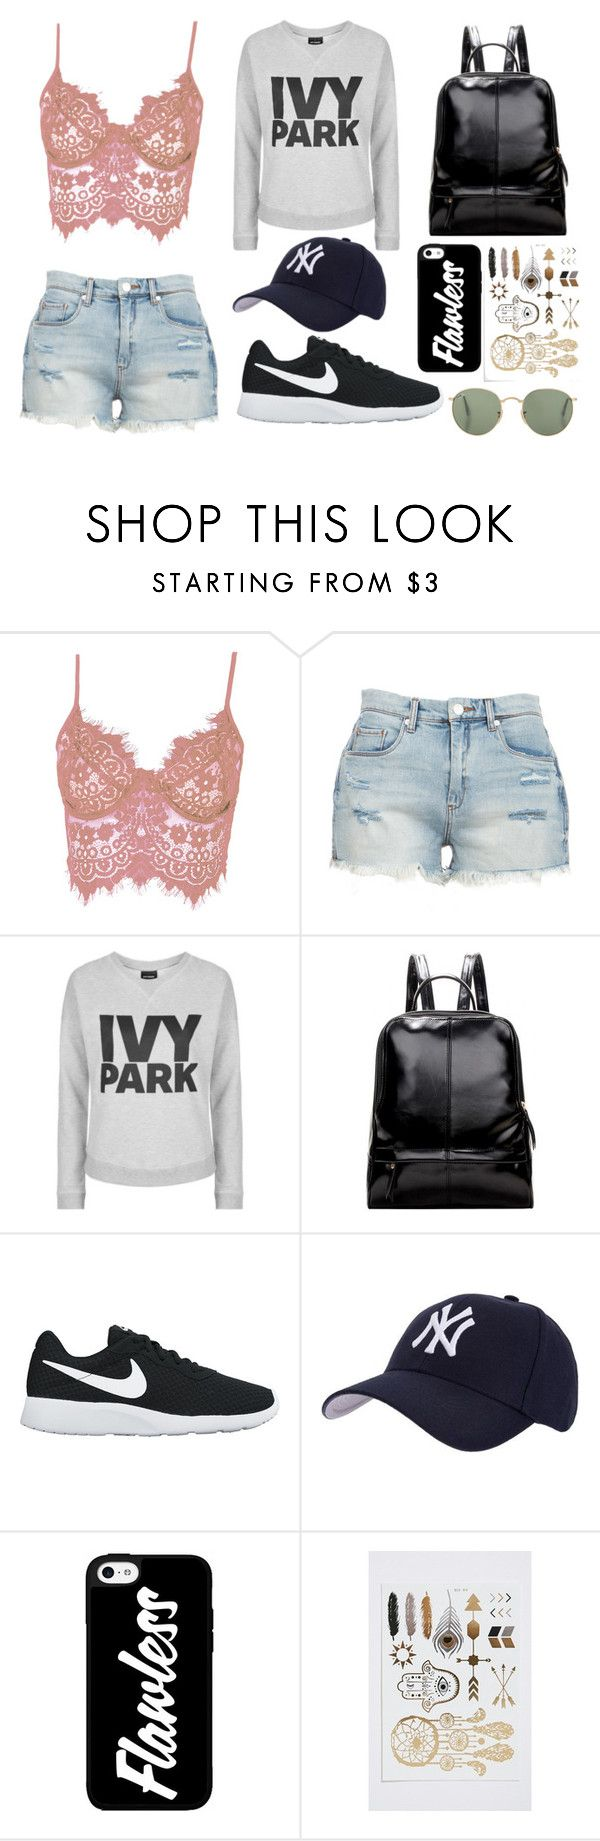 Outfit 15 by sarahcb2002 on Polyvore featuring Topshop, WithChic, BLANKNYC, NIKE and Hartford